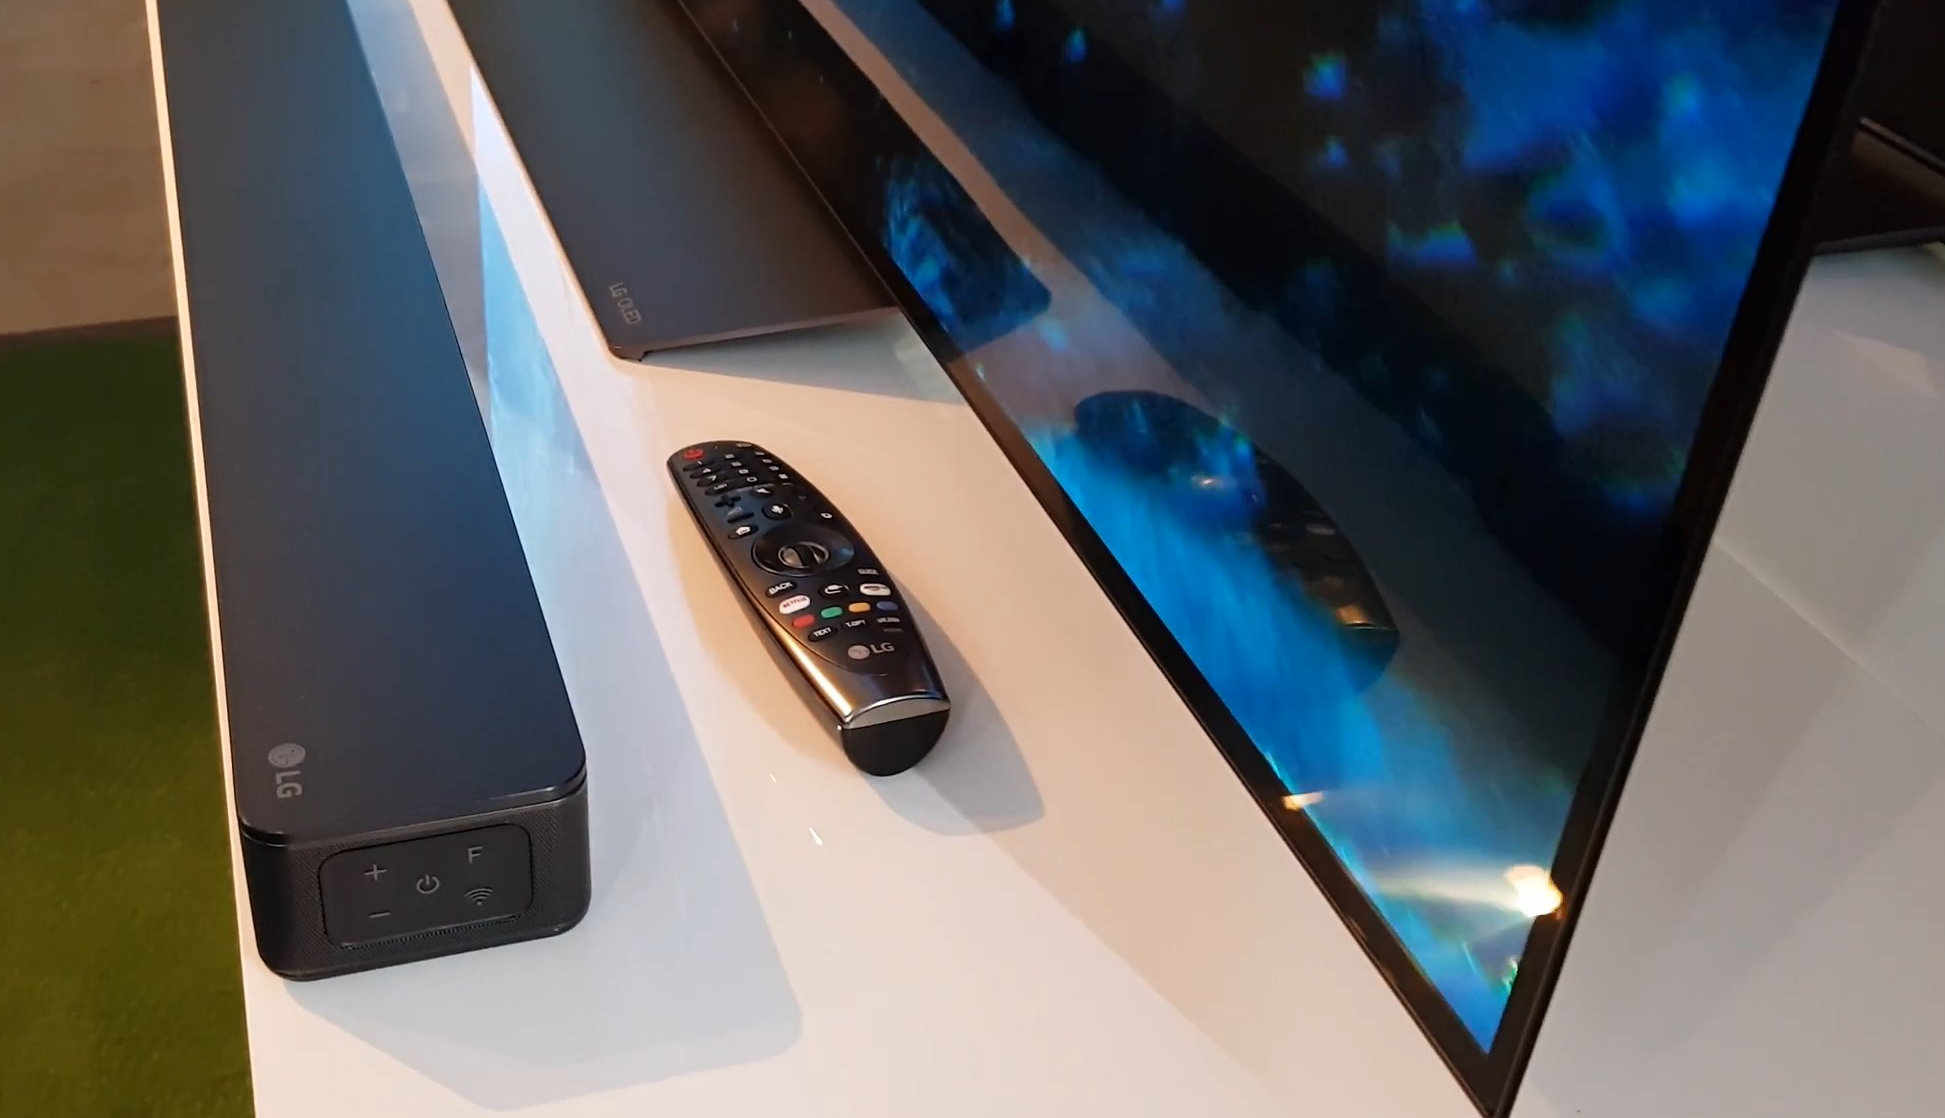 LG B8V Magic Remote.jpg